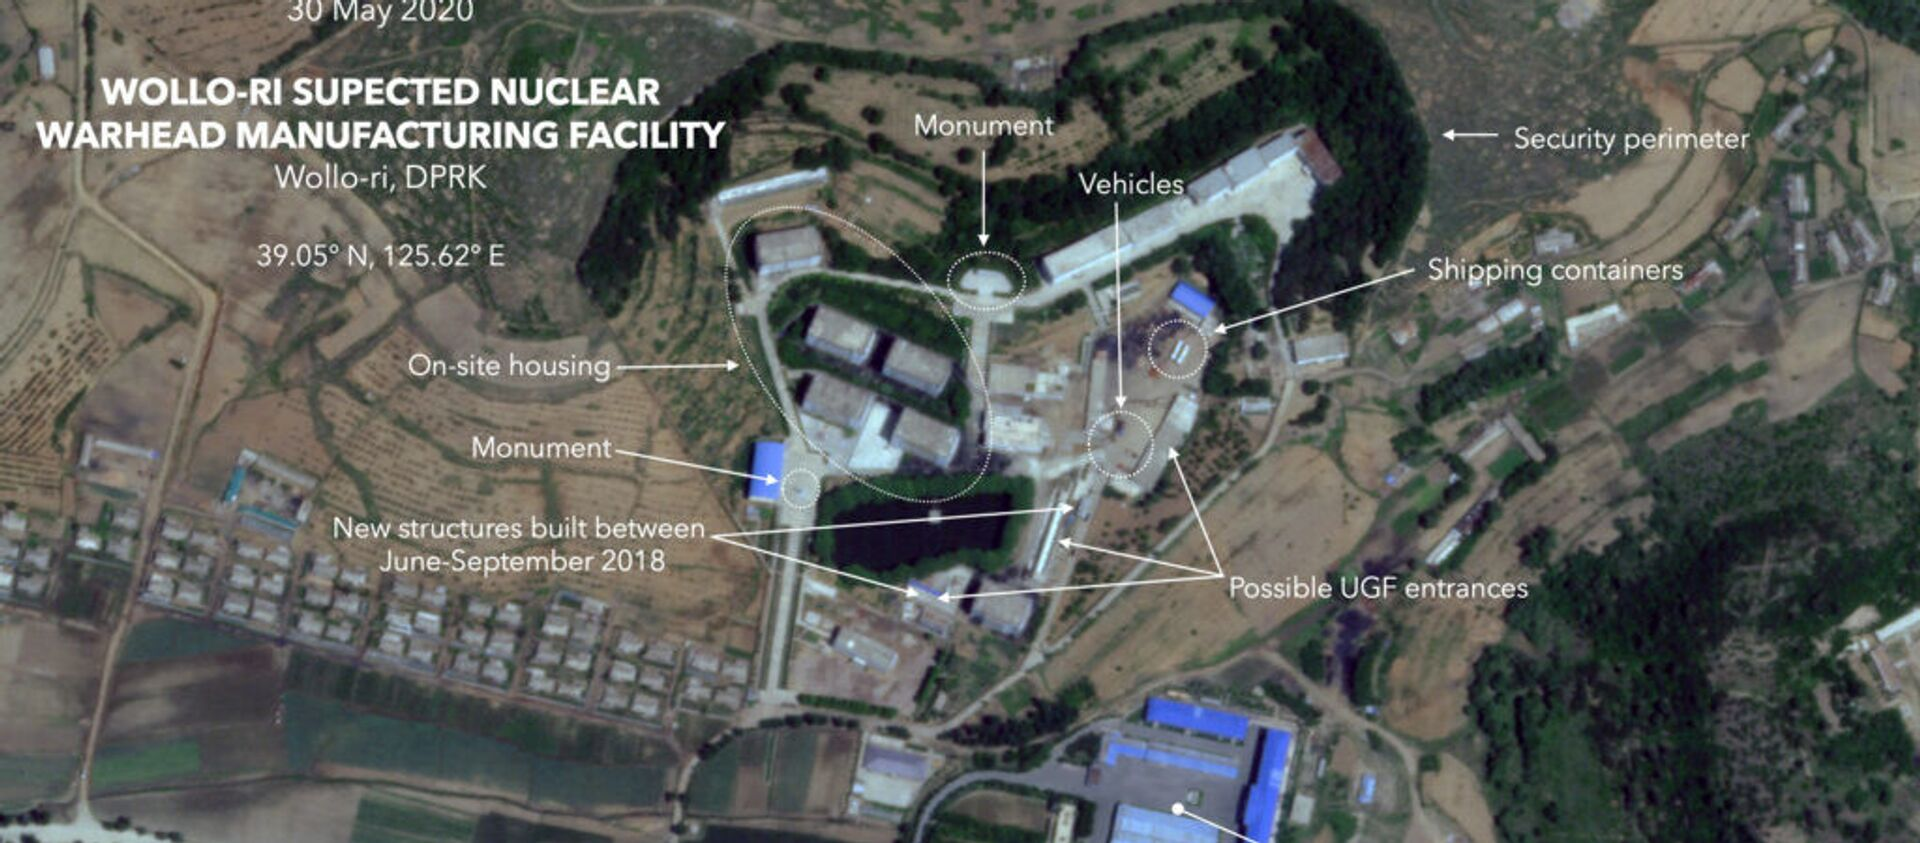 Satellite image of a suspected North Korean nuclear weapons facility taken May 30, 2020 - Sputnik International, 1920, 09.07.2020